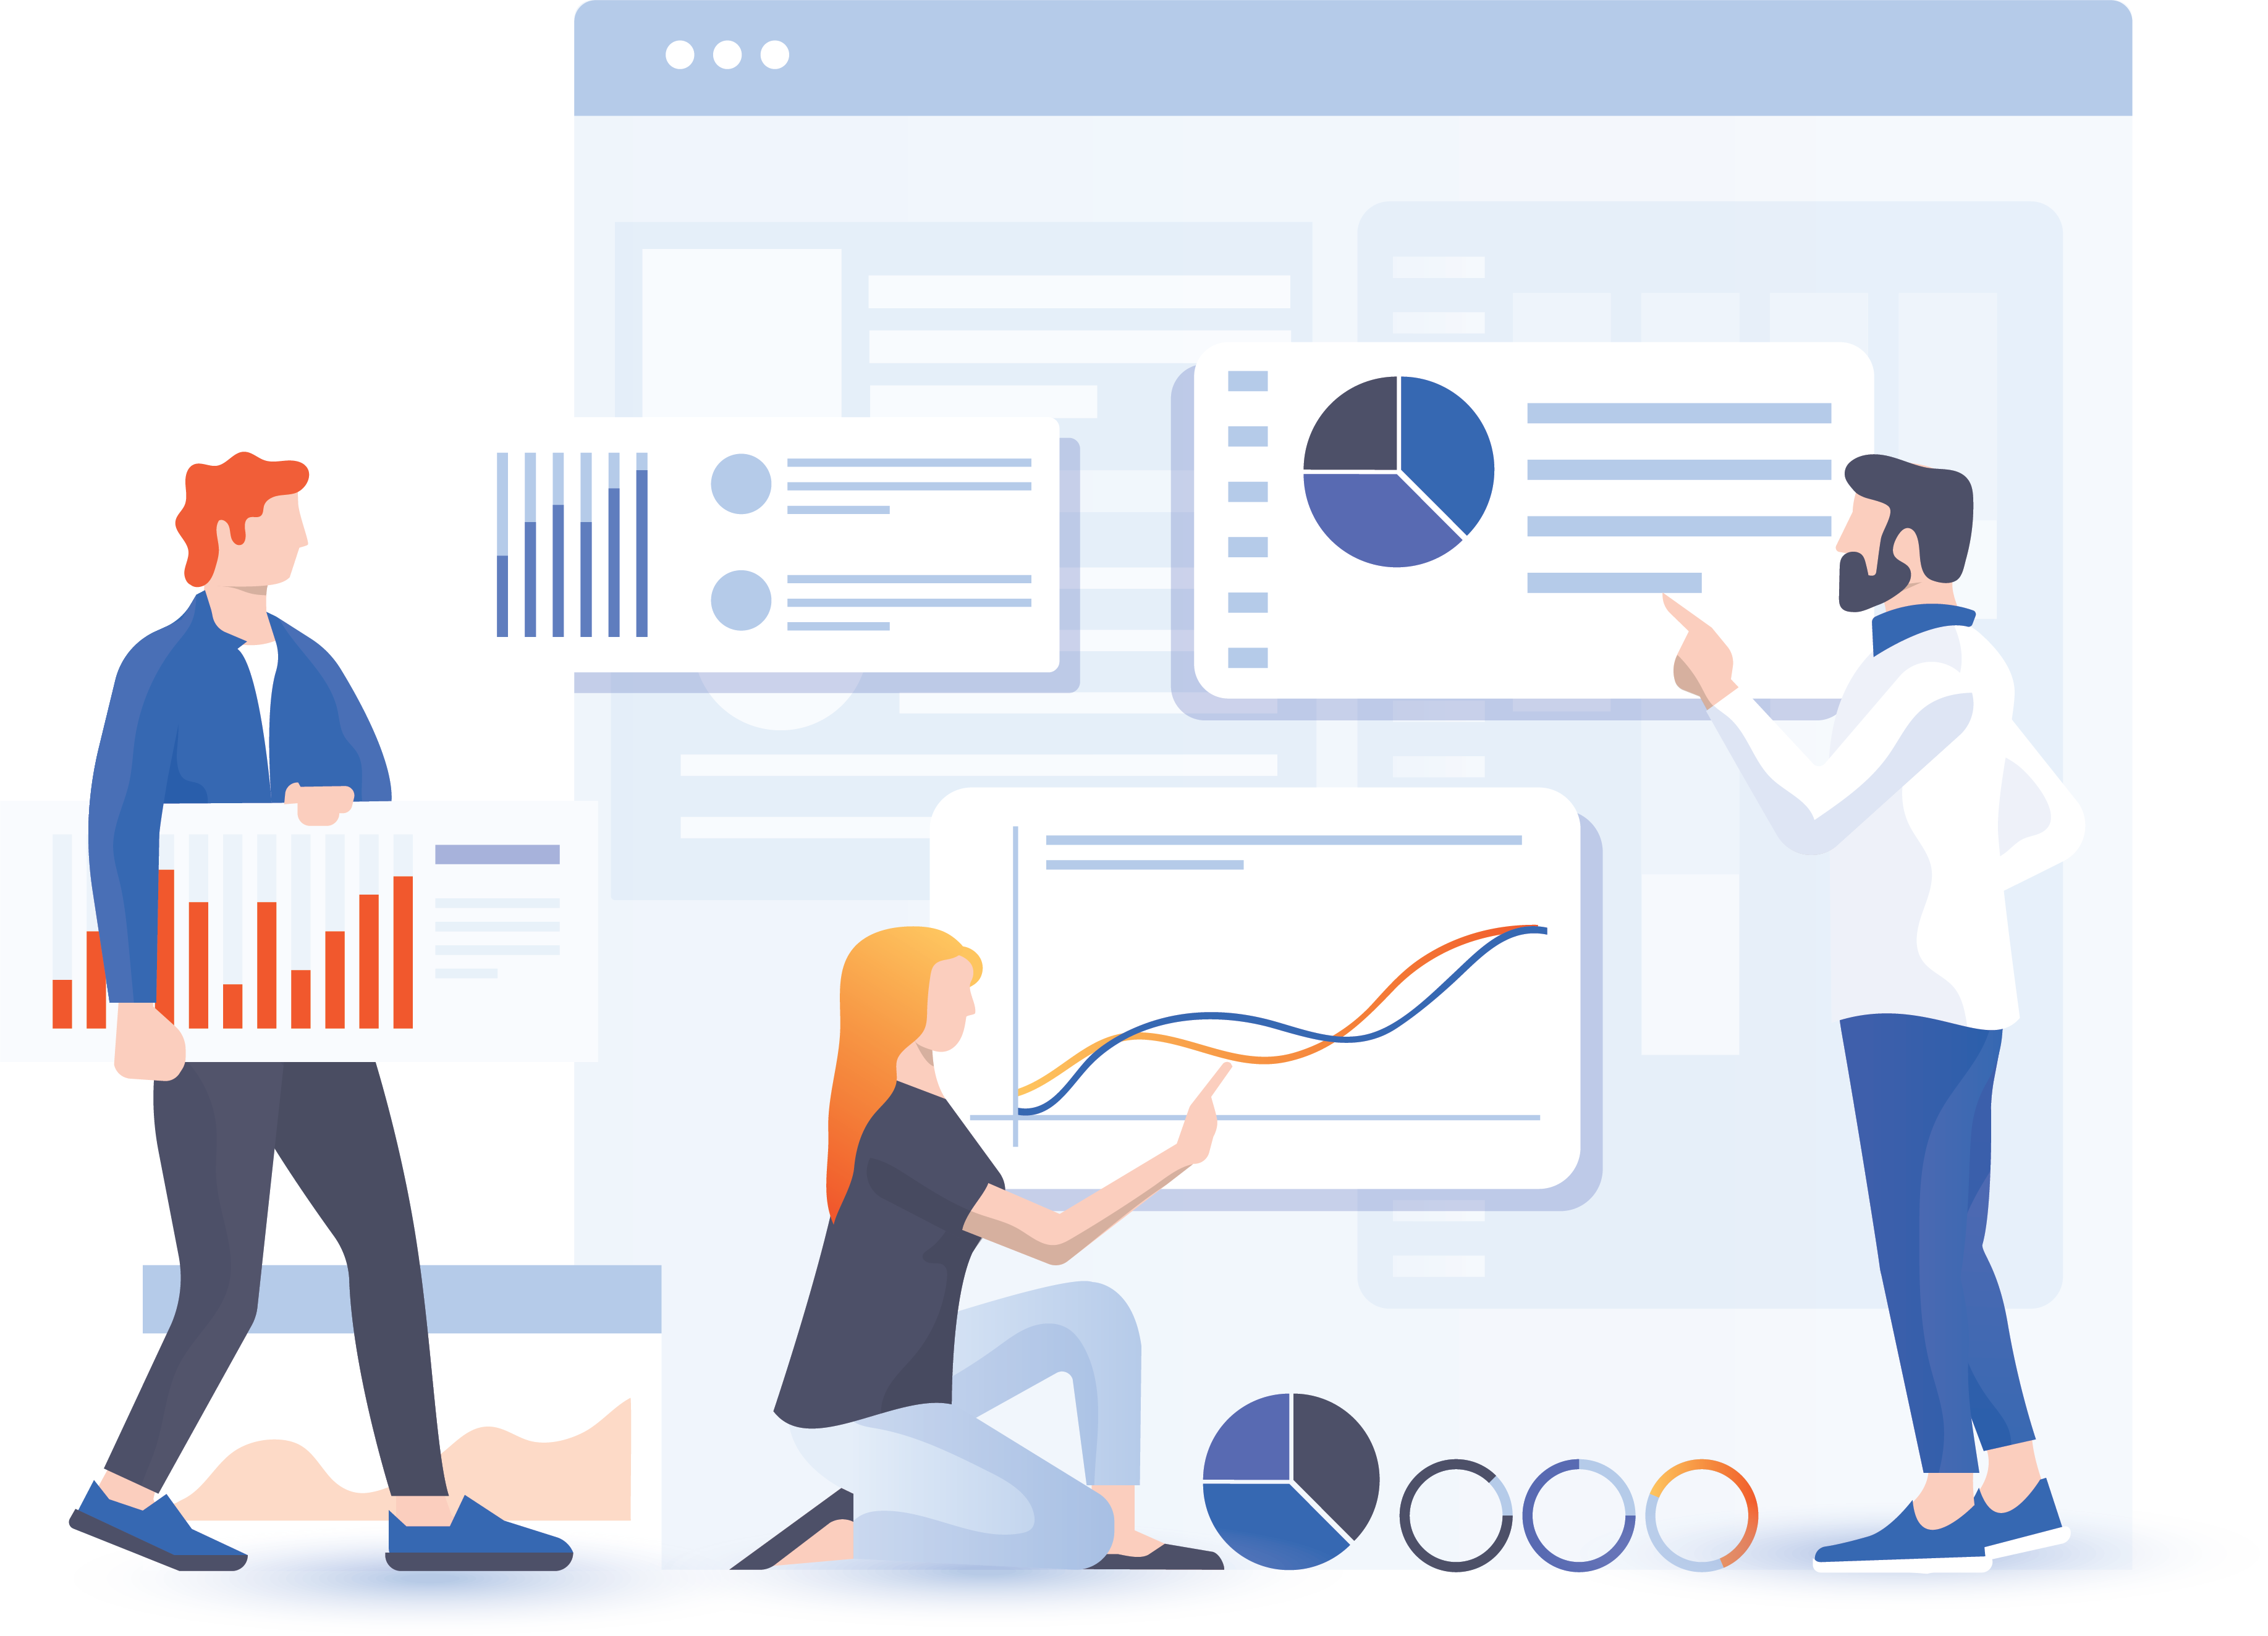 HR data management and visualization